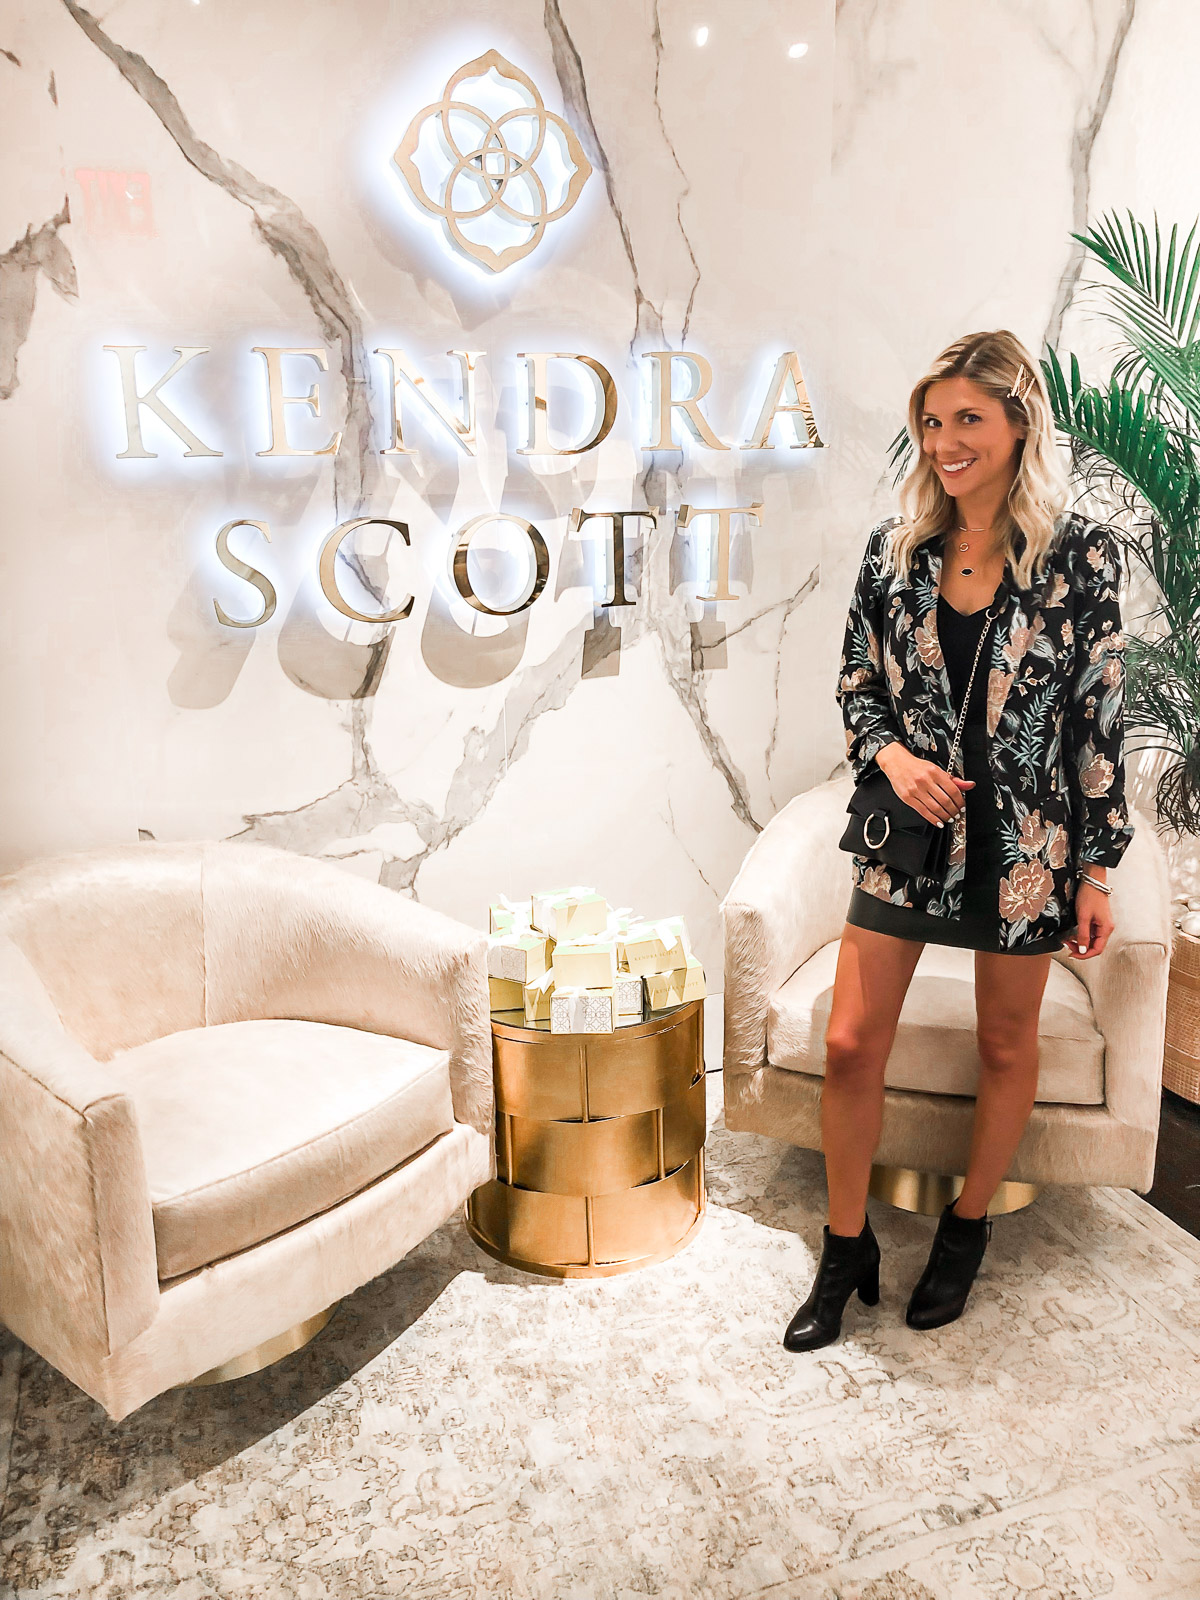 Kendra scott showroom